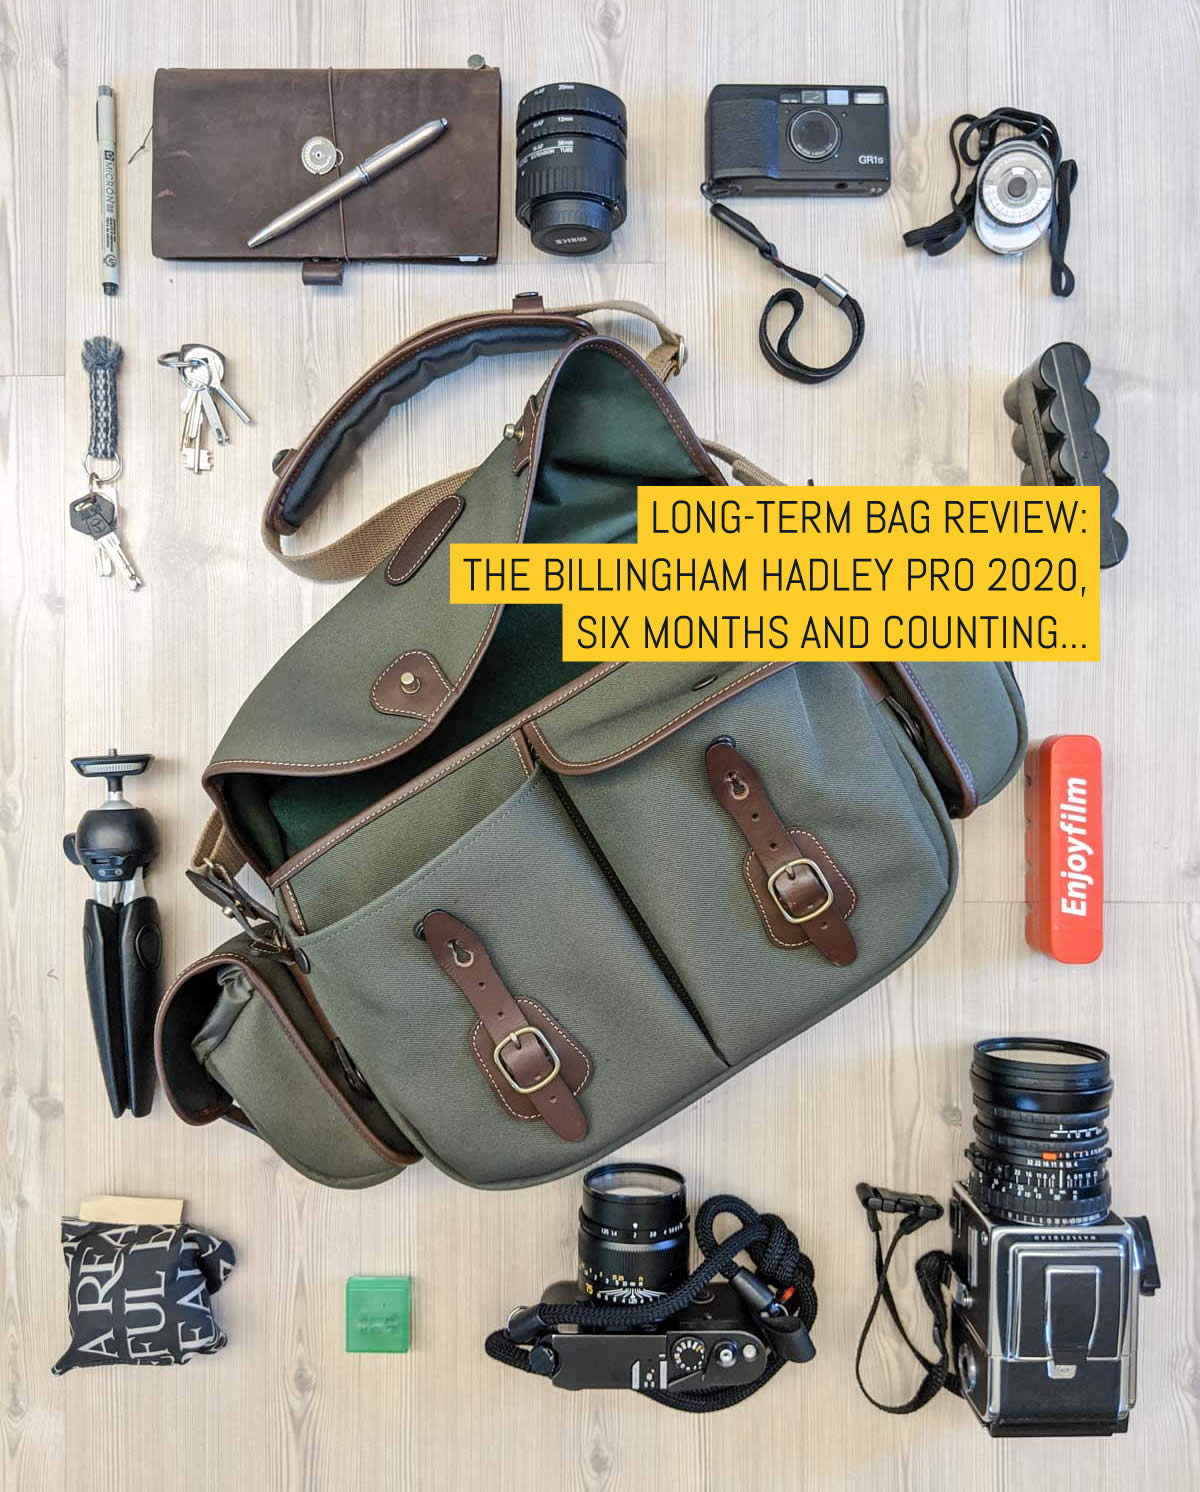 Long-term bag review: The Billingham Hadley Pro 2020, six months and counting...